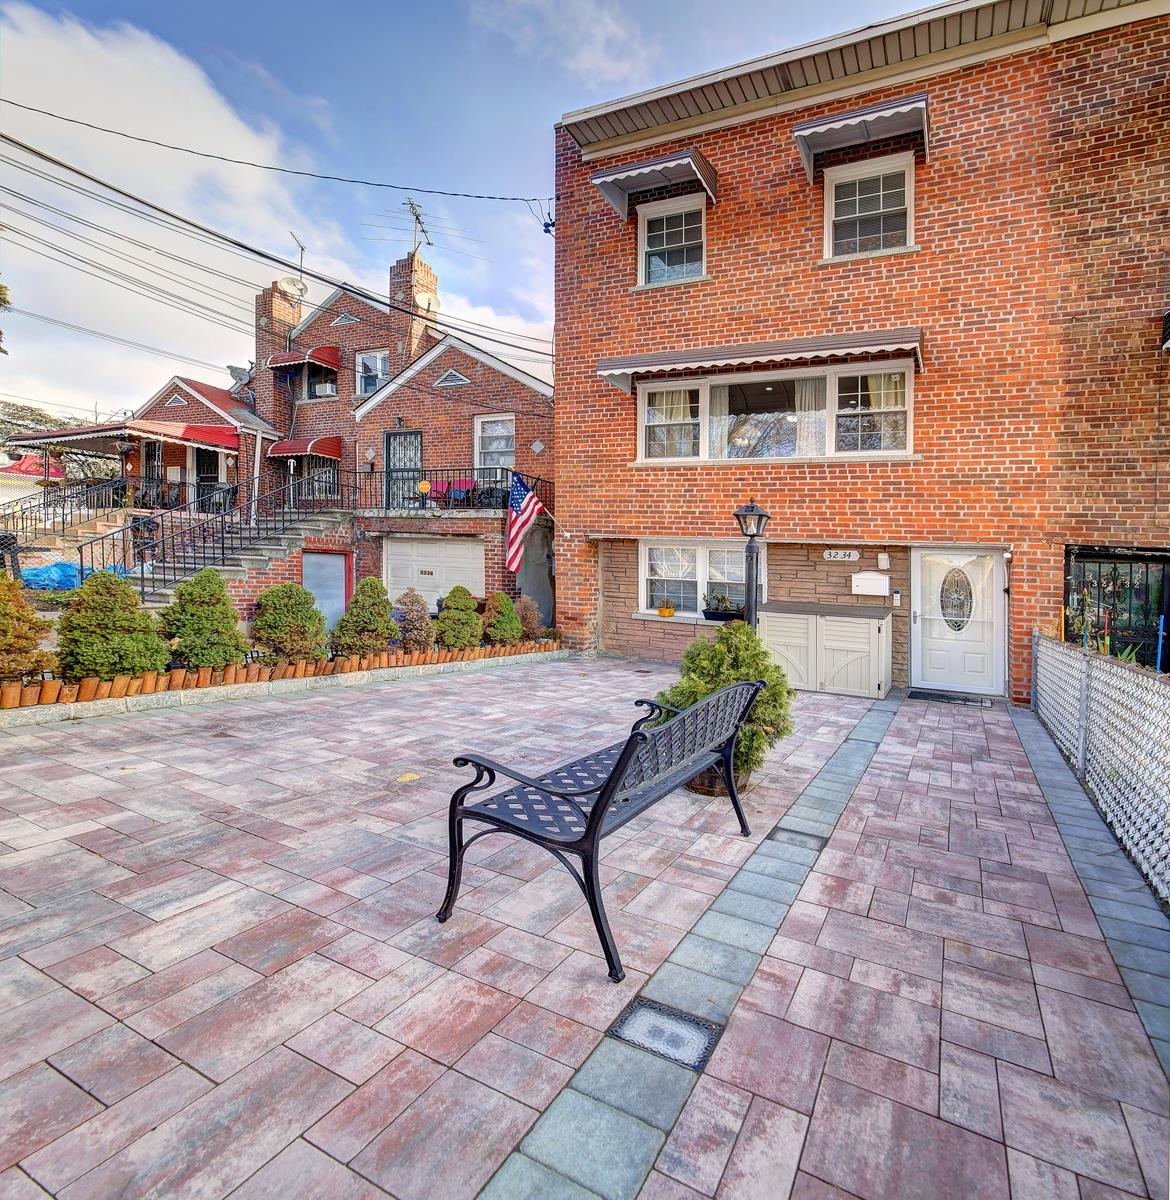 Townhouse for Sale at 3234 Tenbroeck Avenue 3234 Tenbroeck Avenue Bronx, New York 10469 United States